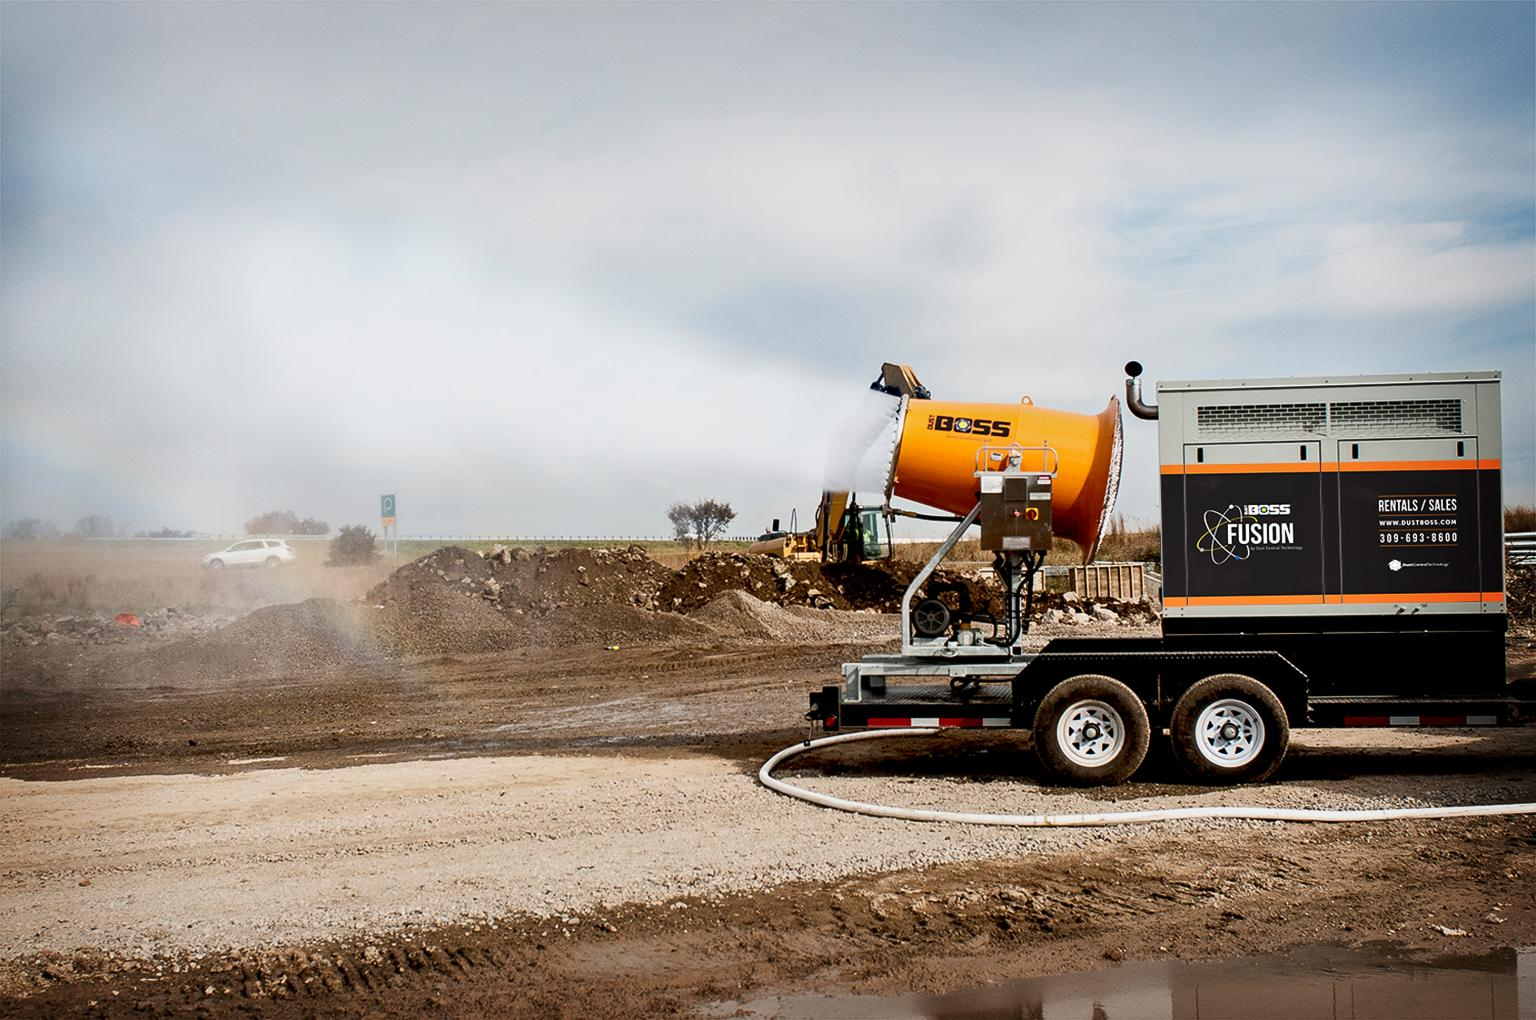 The unit is engineered to be highly mobile, and can be set up for use with potable or non-potable water